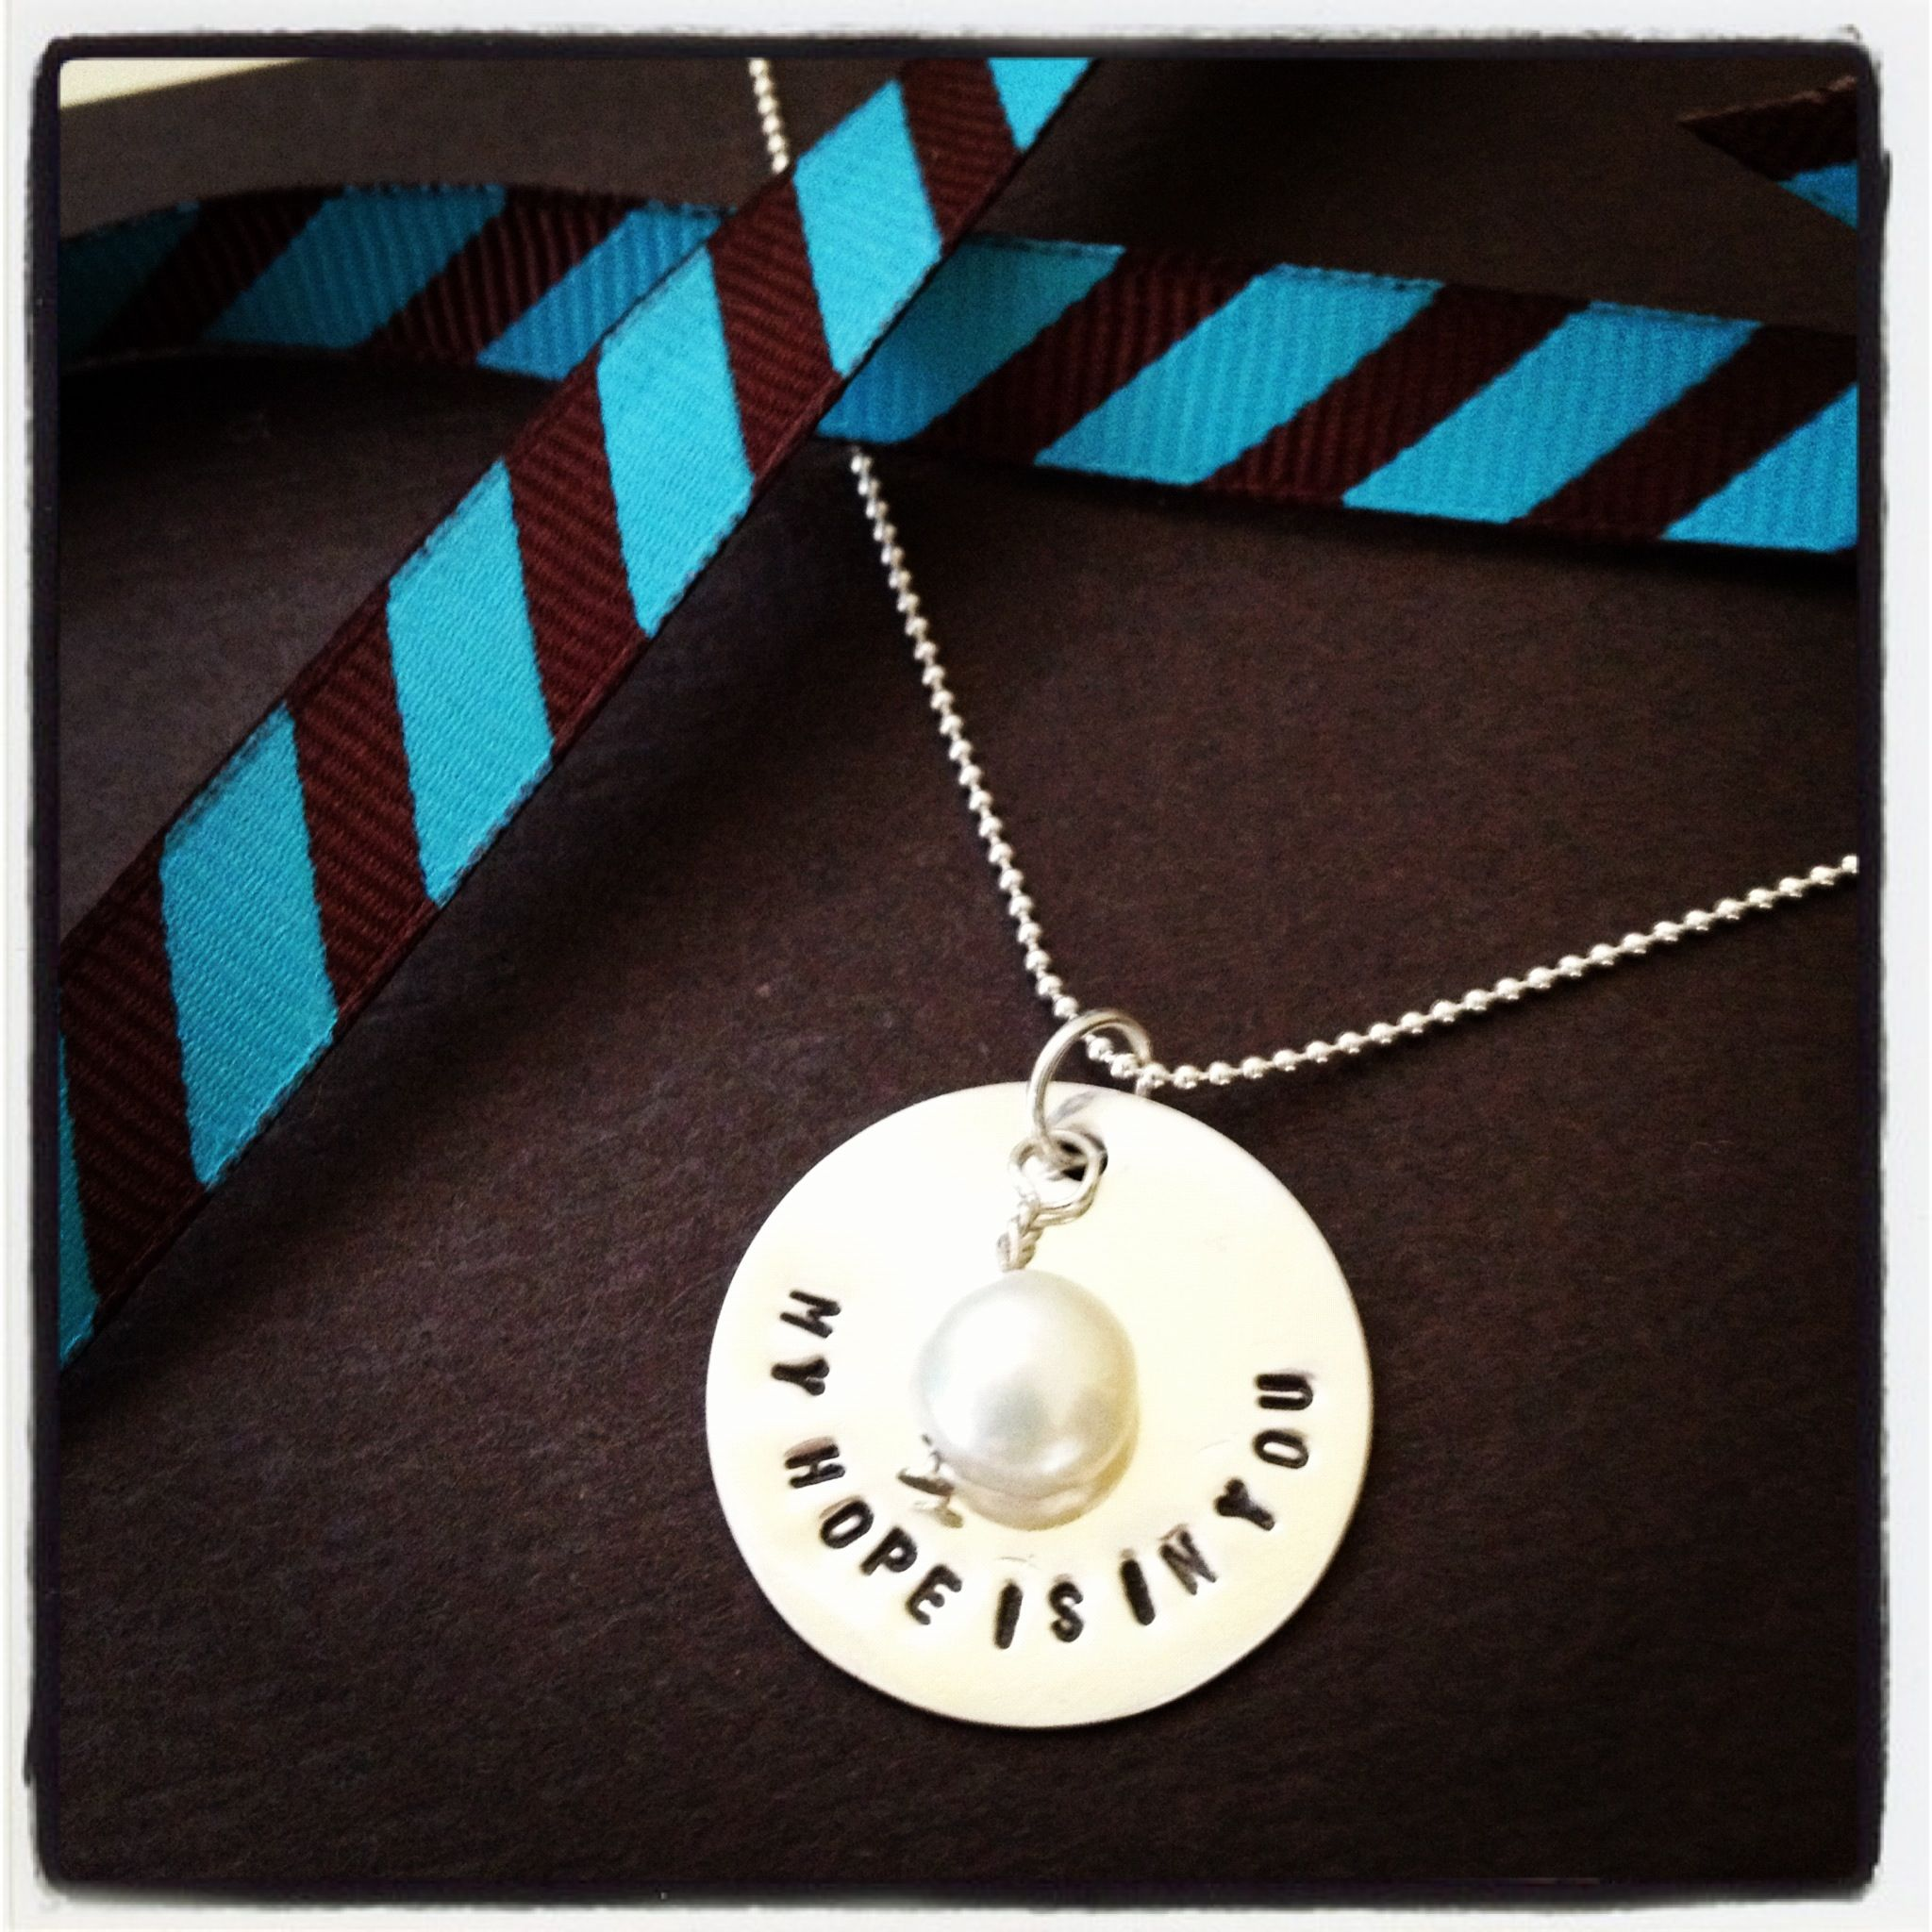 Simpli Stamped Jewelry Review, Coupon Code and GIVEAWAY